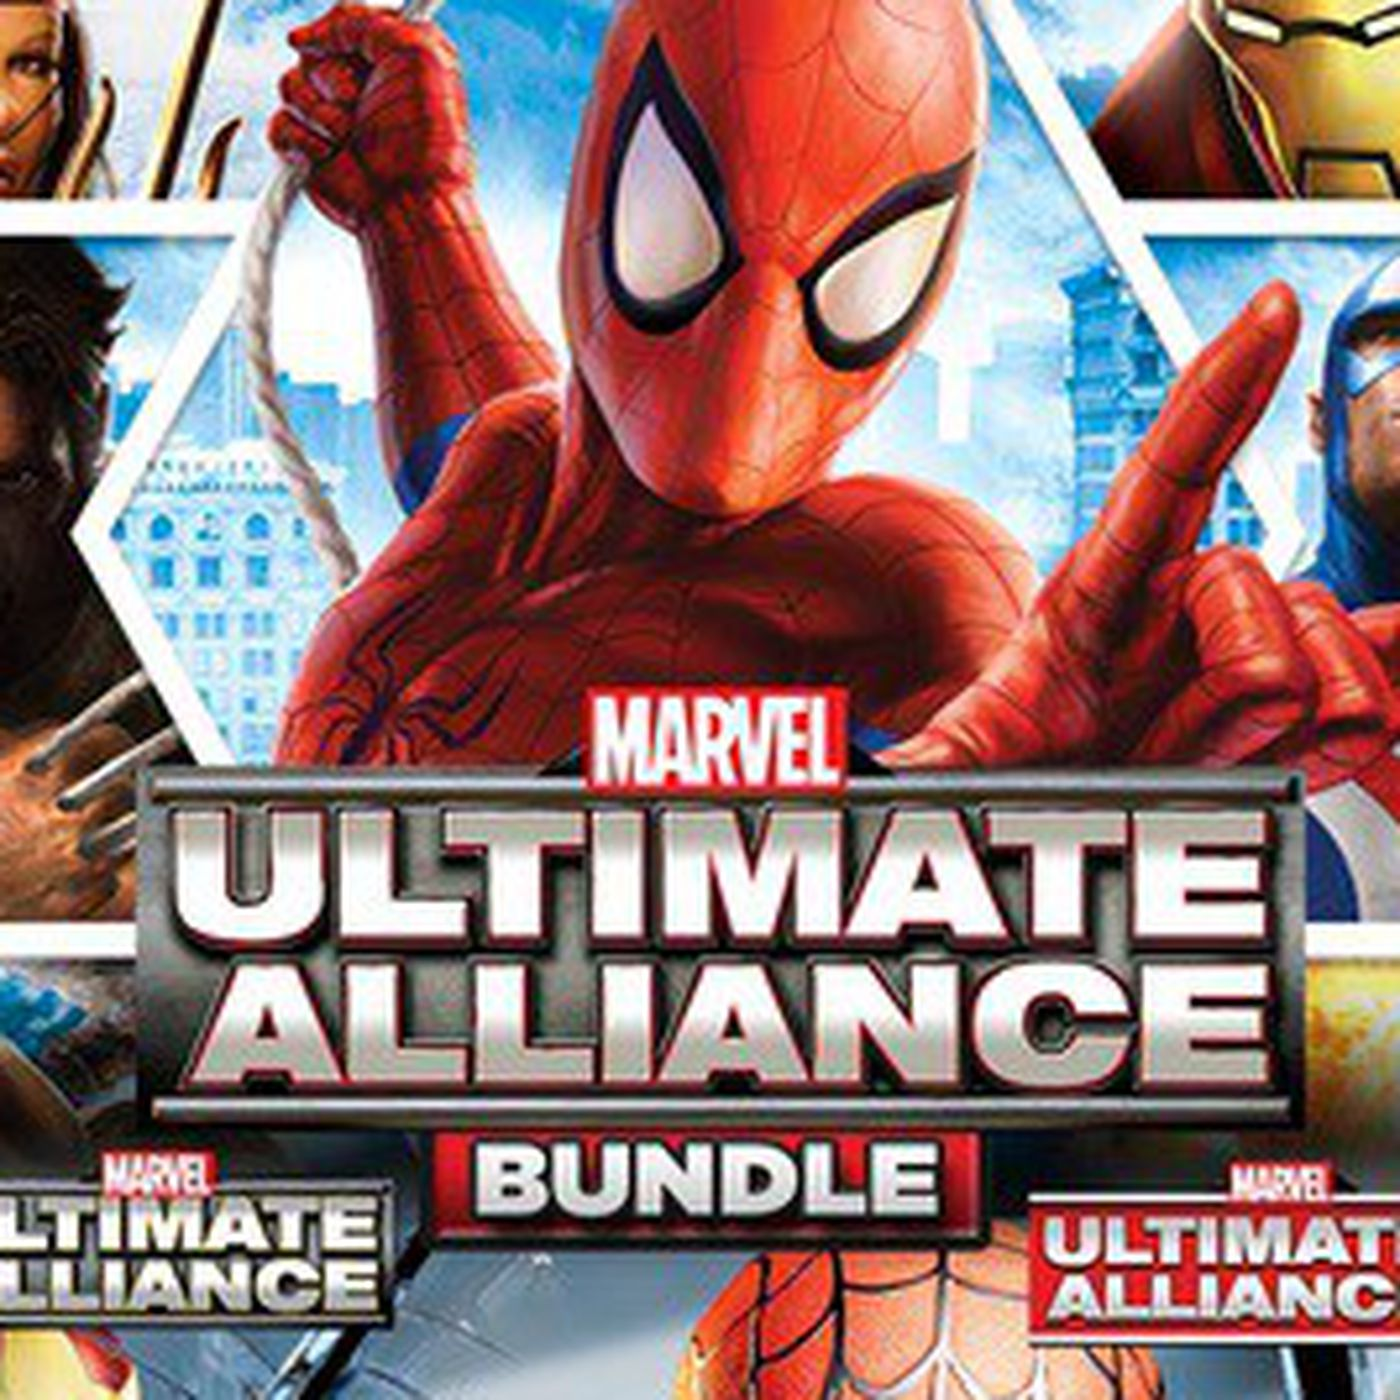 Marvel Ultimate Alliance returns to PS4, Xbox One next week